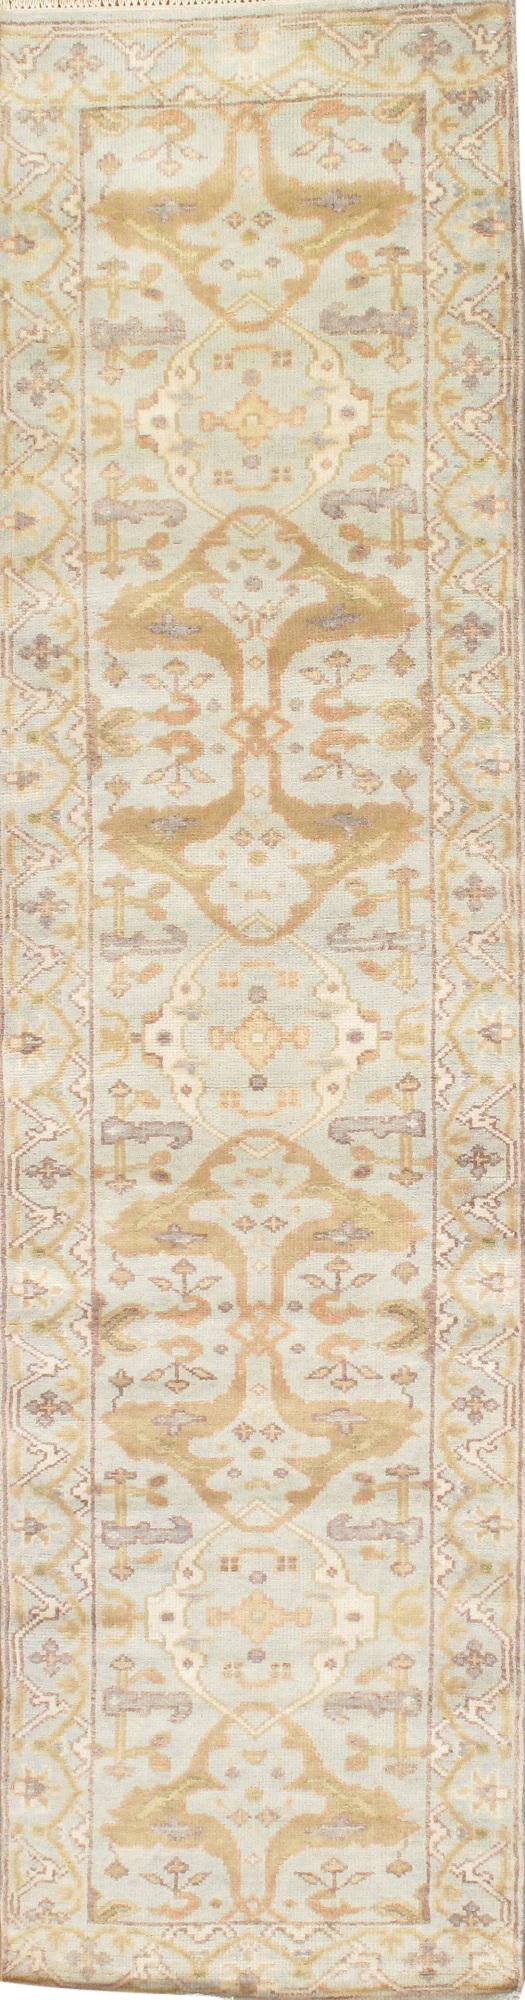 Hand Knotted Wool Ivory Area Rug